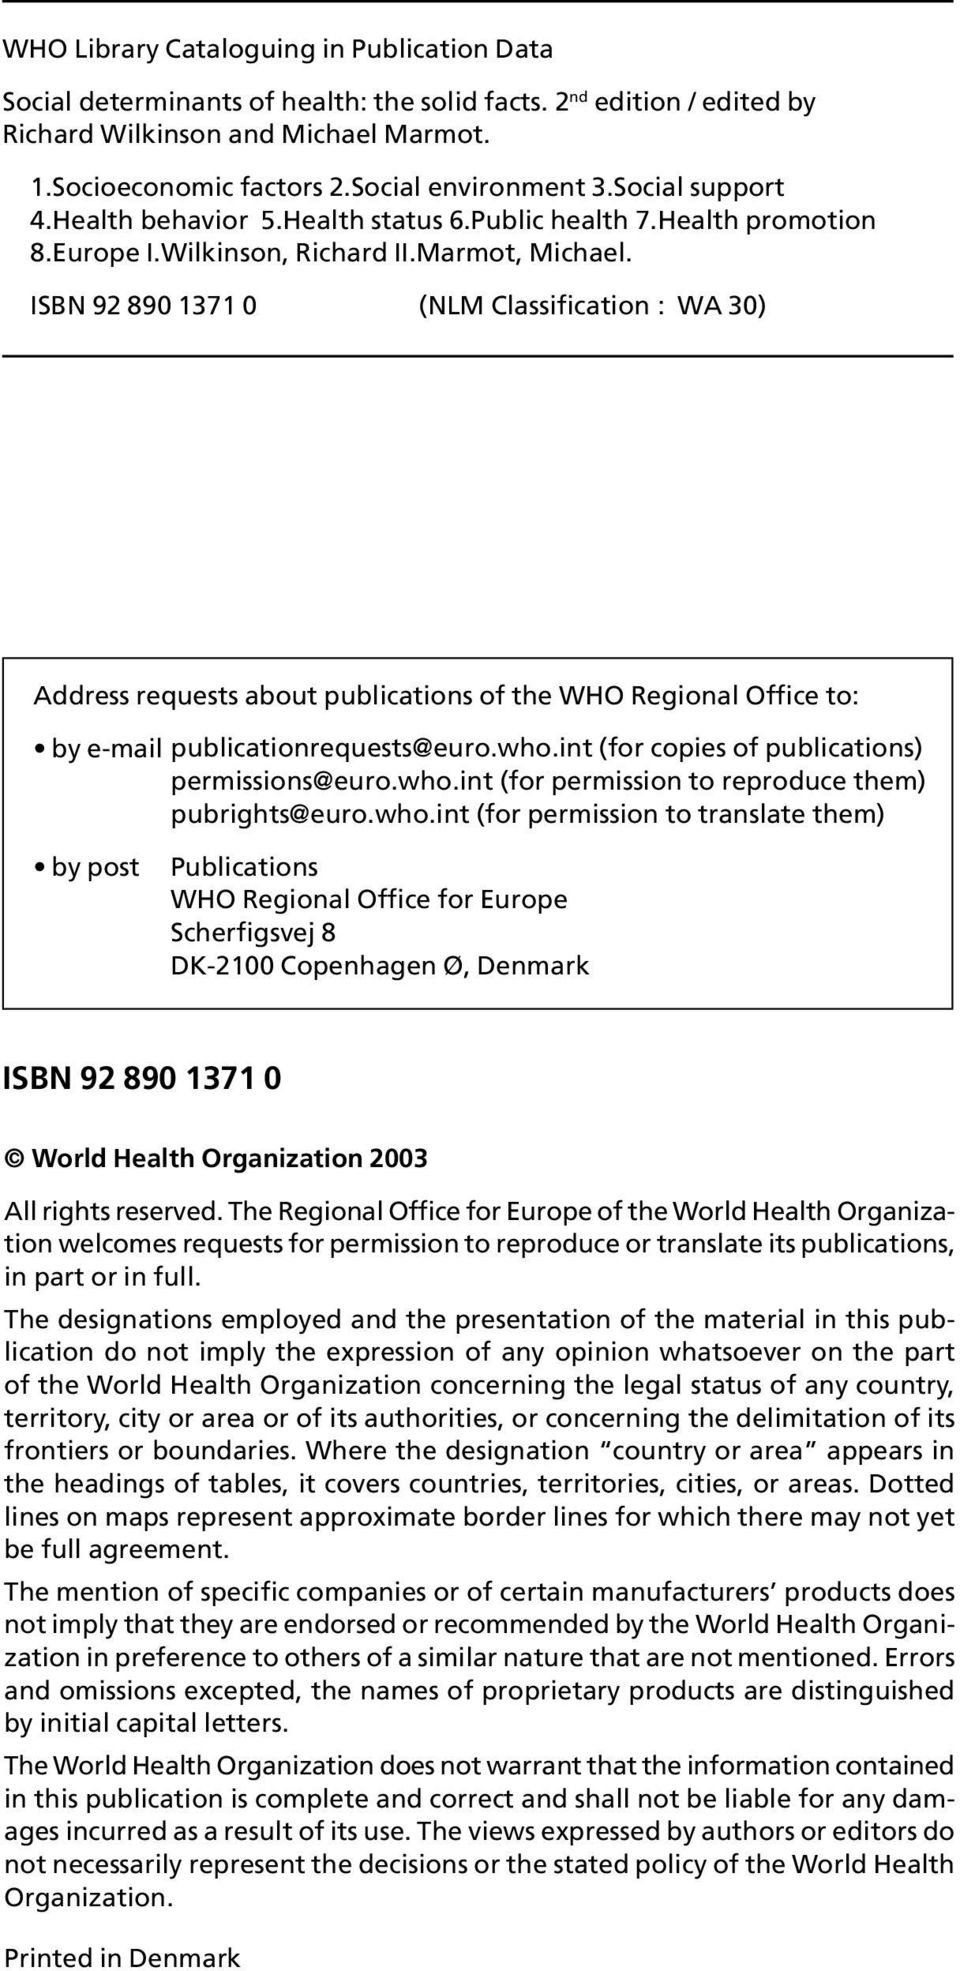 ISBN 92 890 1371 0 (NLM Classification : WA 30) Address requests about publications of the WHO Regional Office to: by e-mail publicationrequests@euro.who.